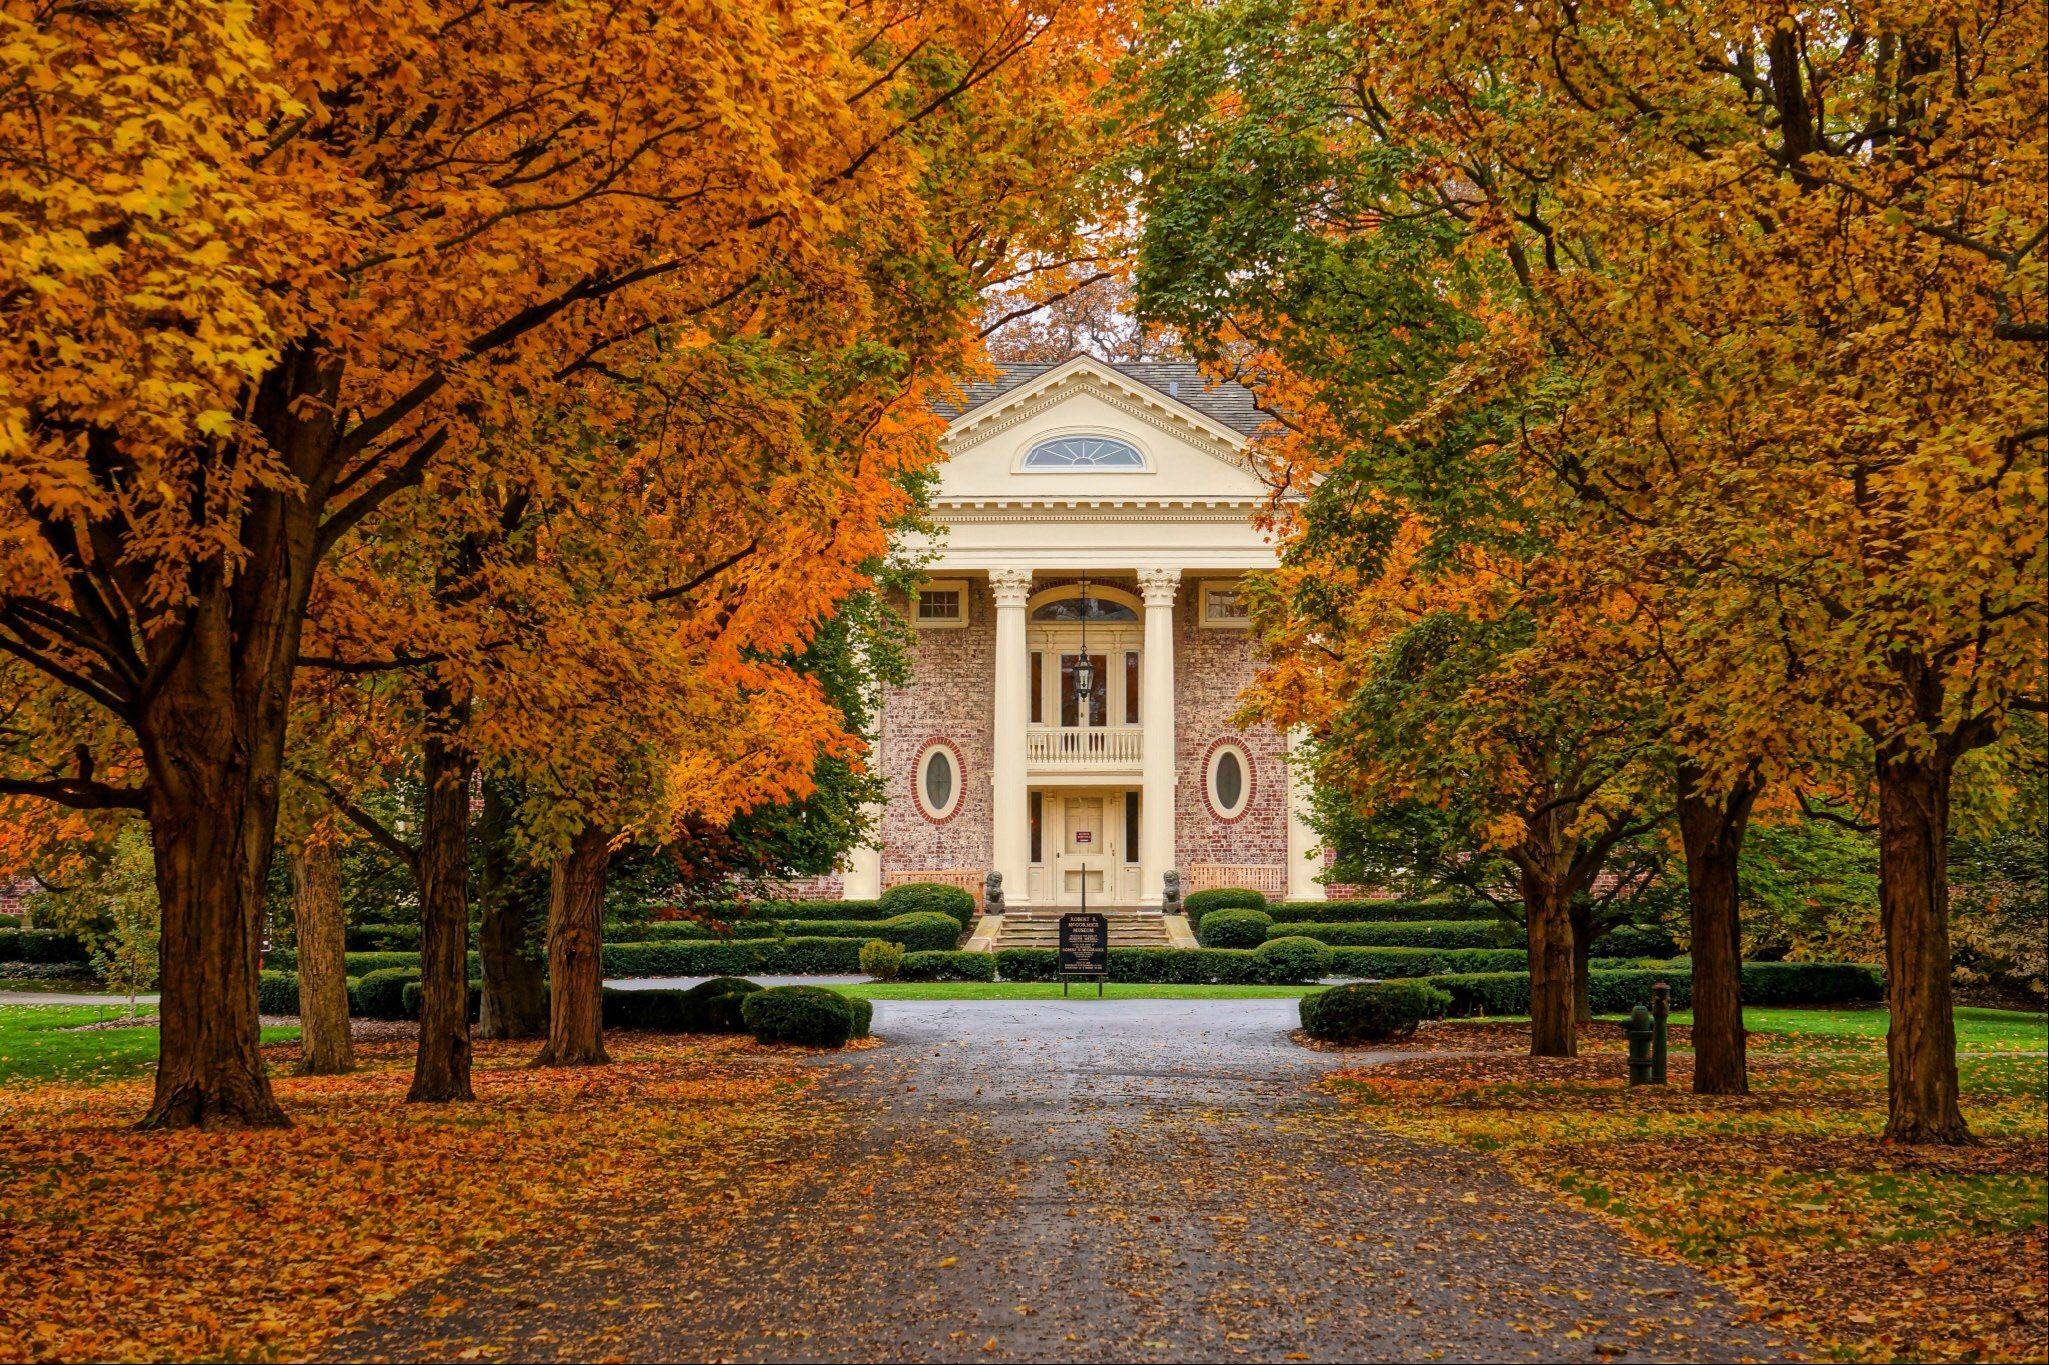 In early November, fall colors lined the walkway to the Robert R. McCormick Museum at Cantigny Park in Wheaton.